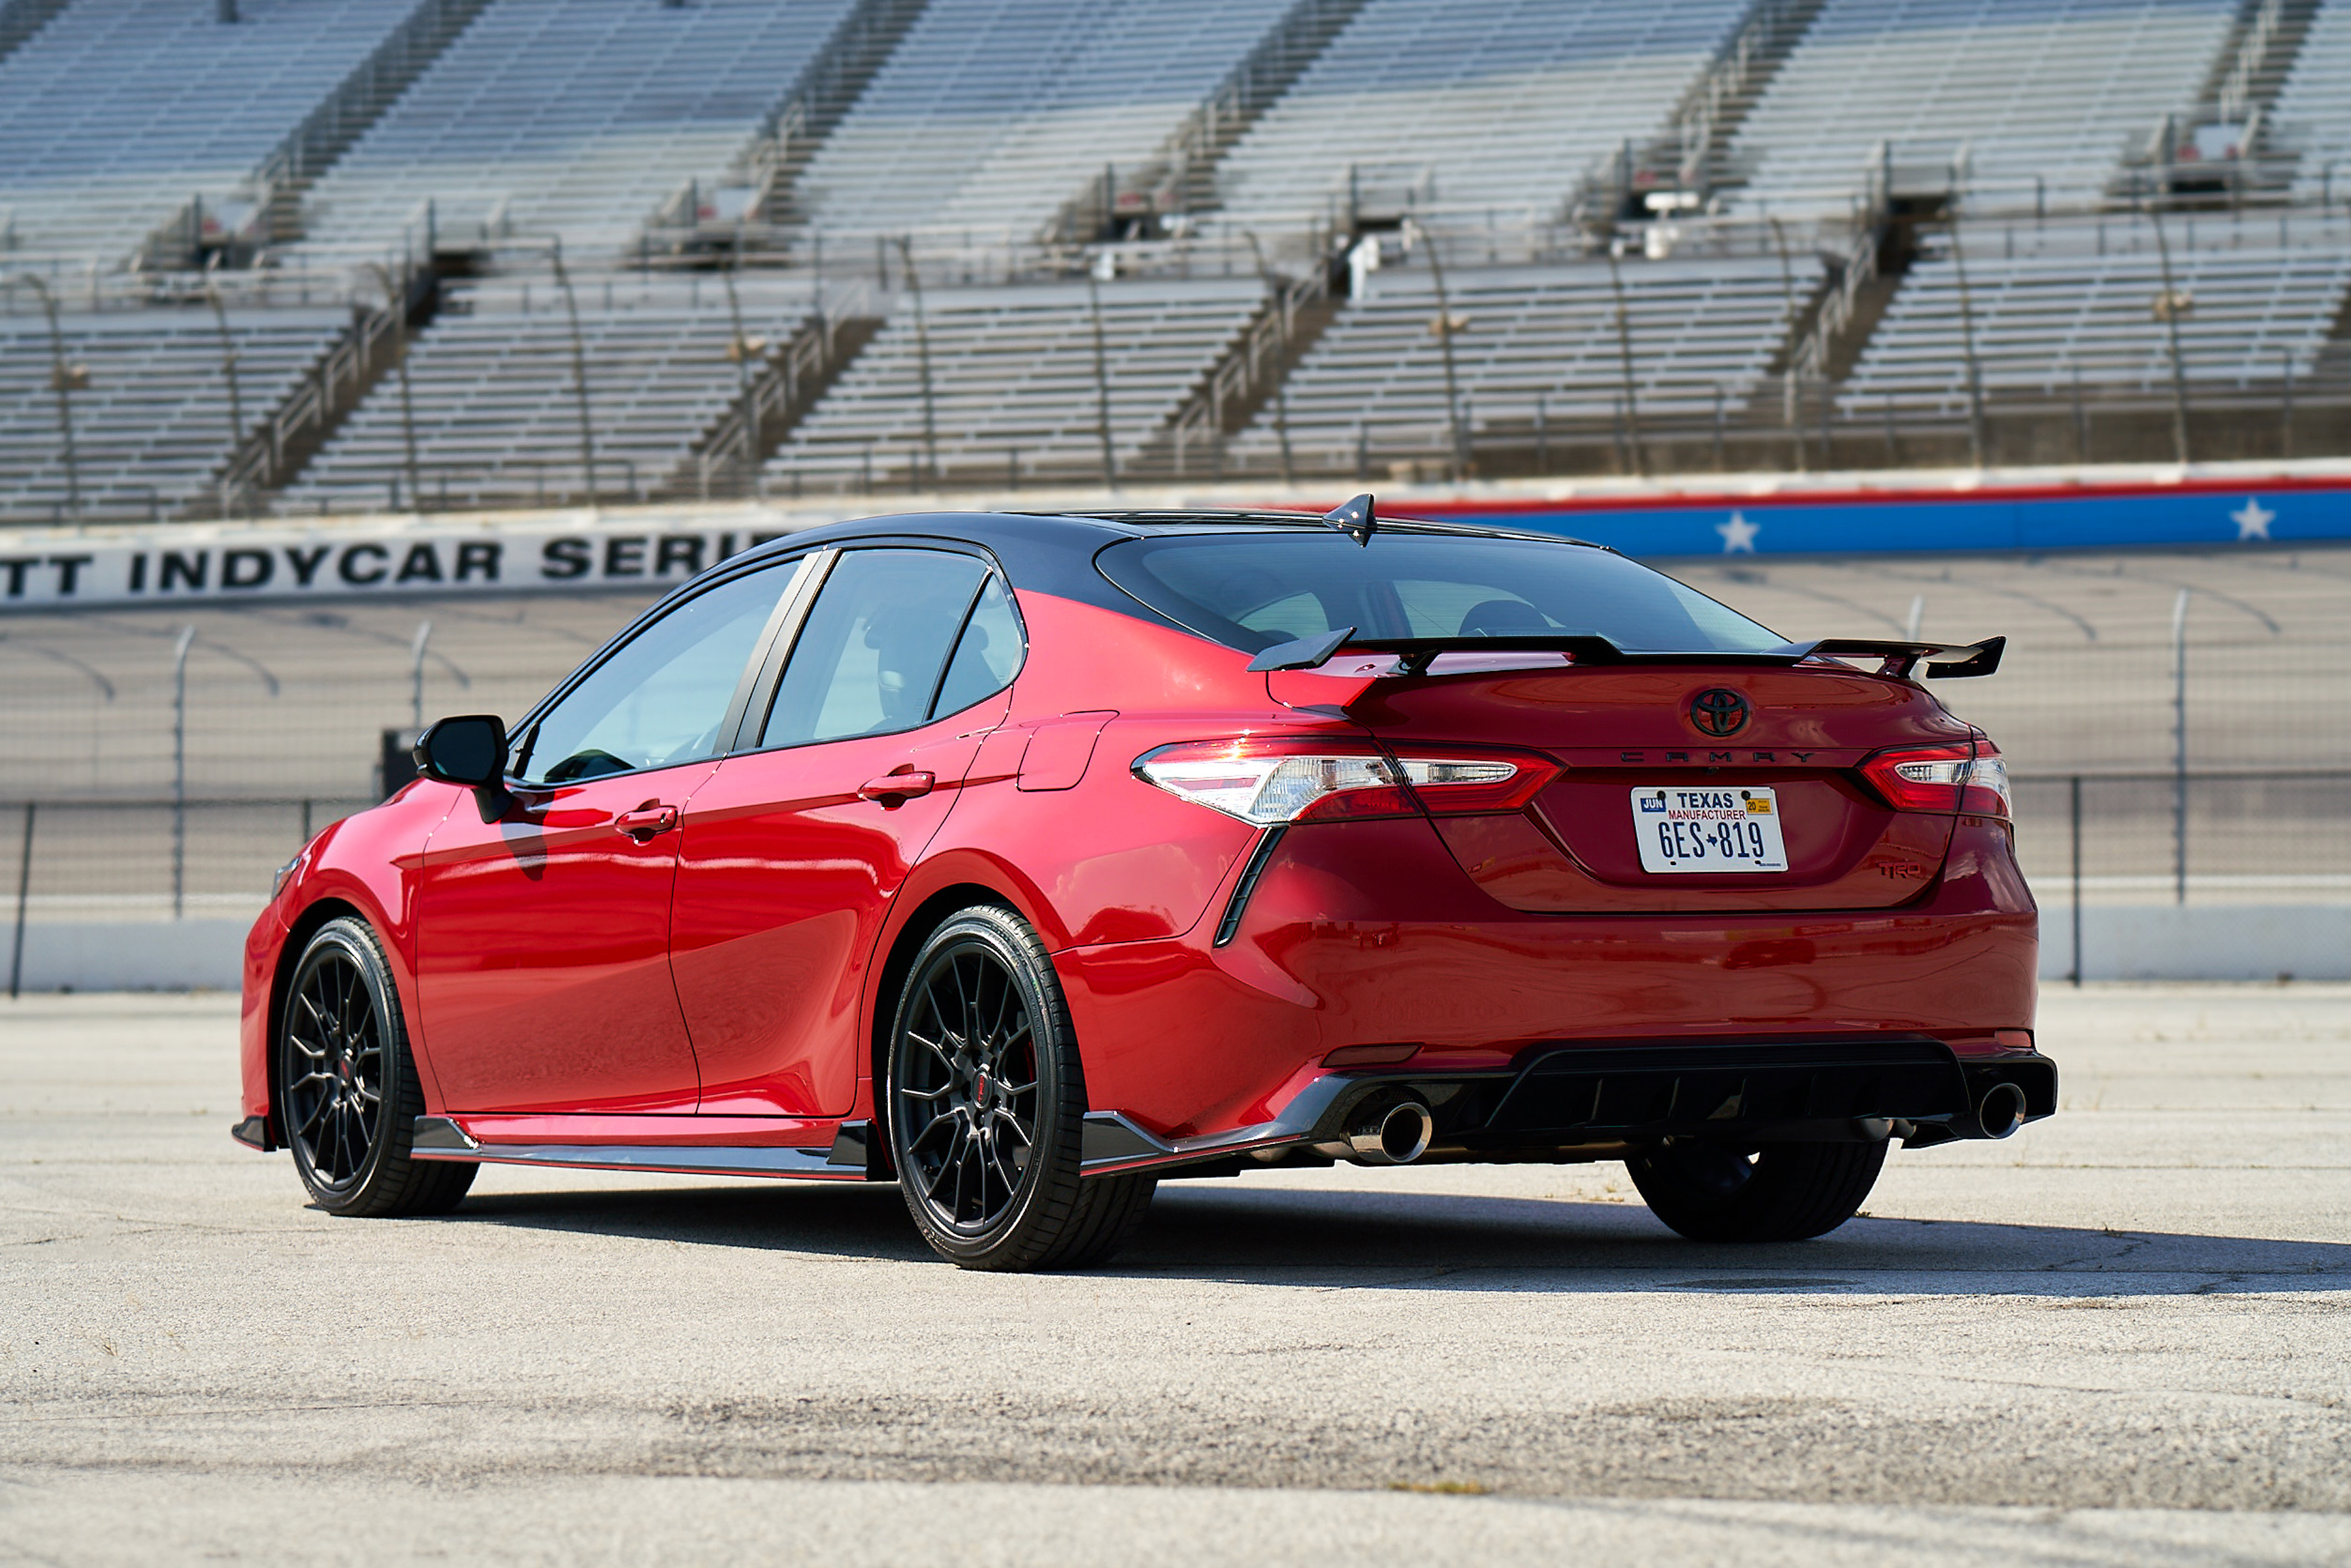 Toyota Camry Leads Midsize Sedan Segment While Revving It Up With First Ever Trd Model Toyota Usa Newsroom